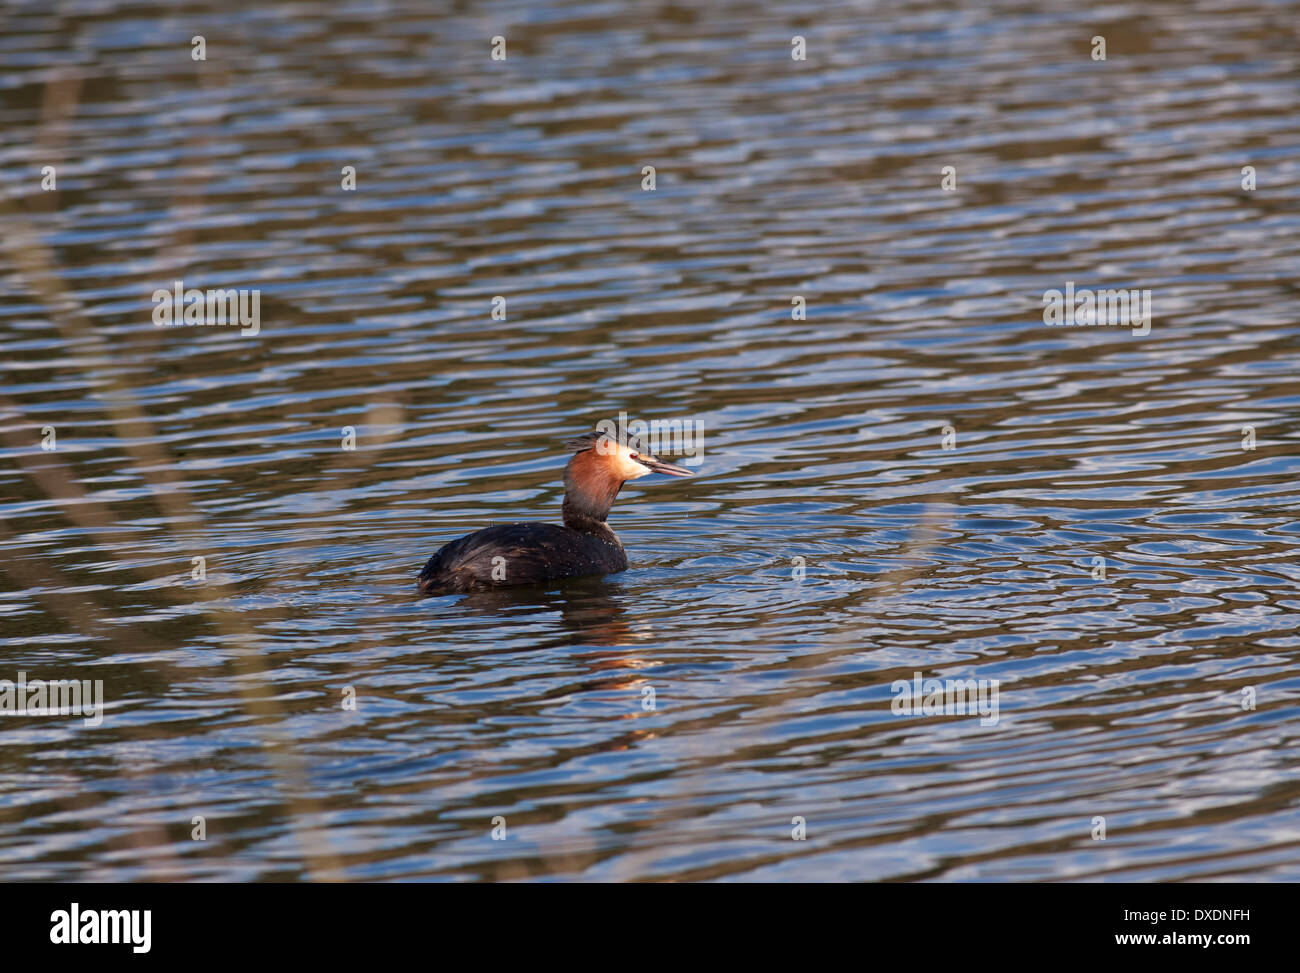 Great crested grebe on the water - Stock Image